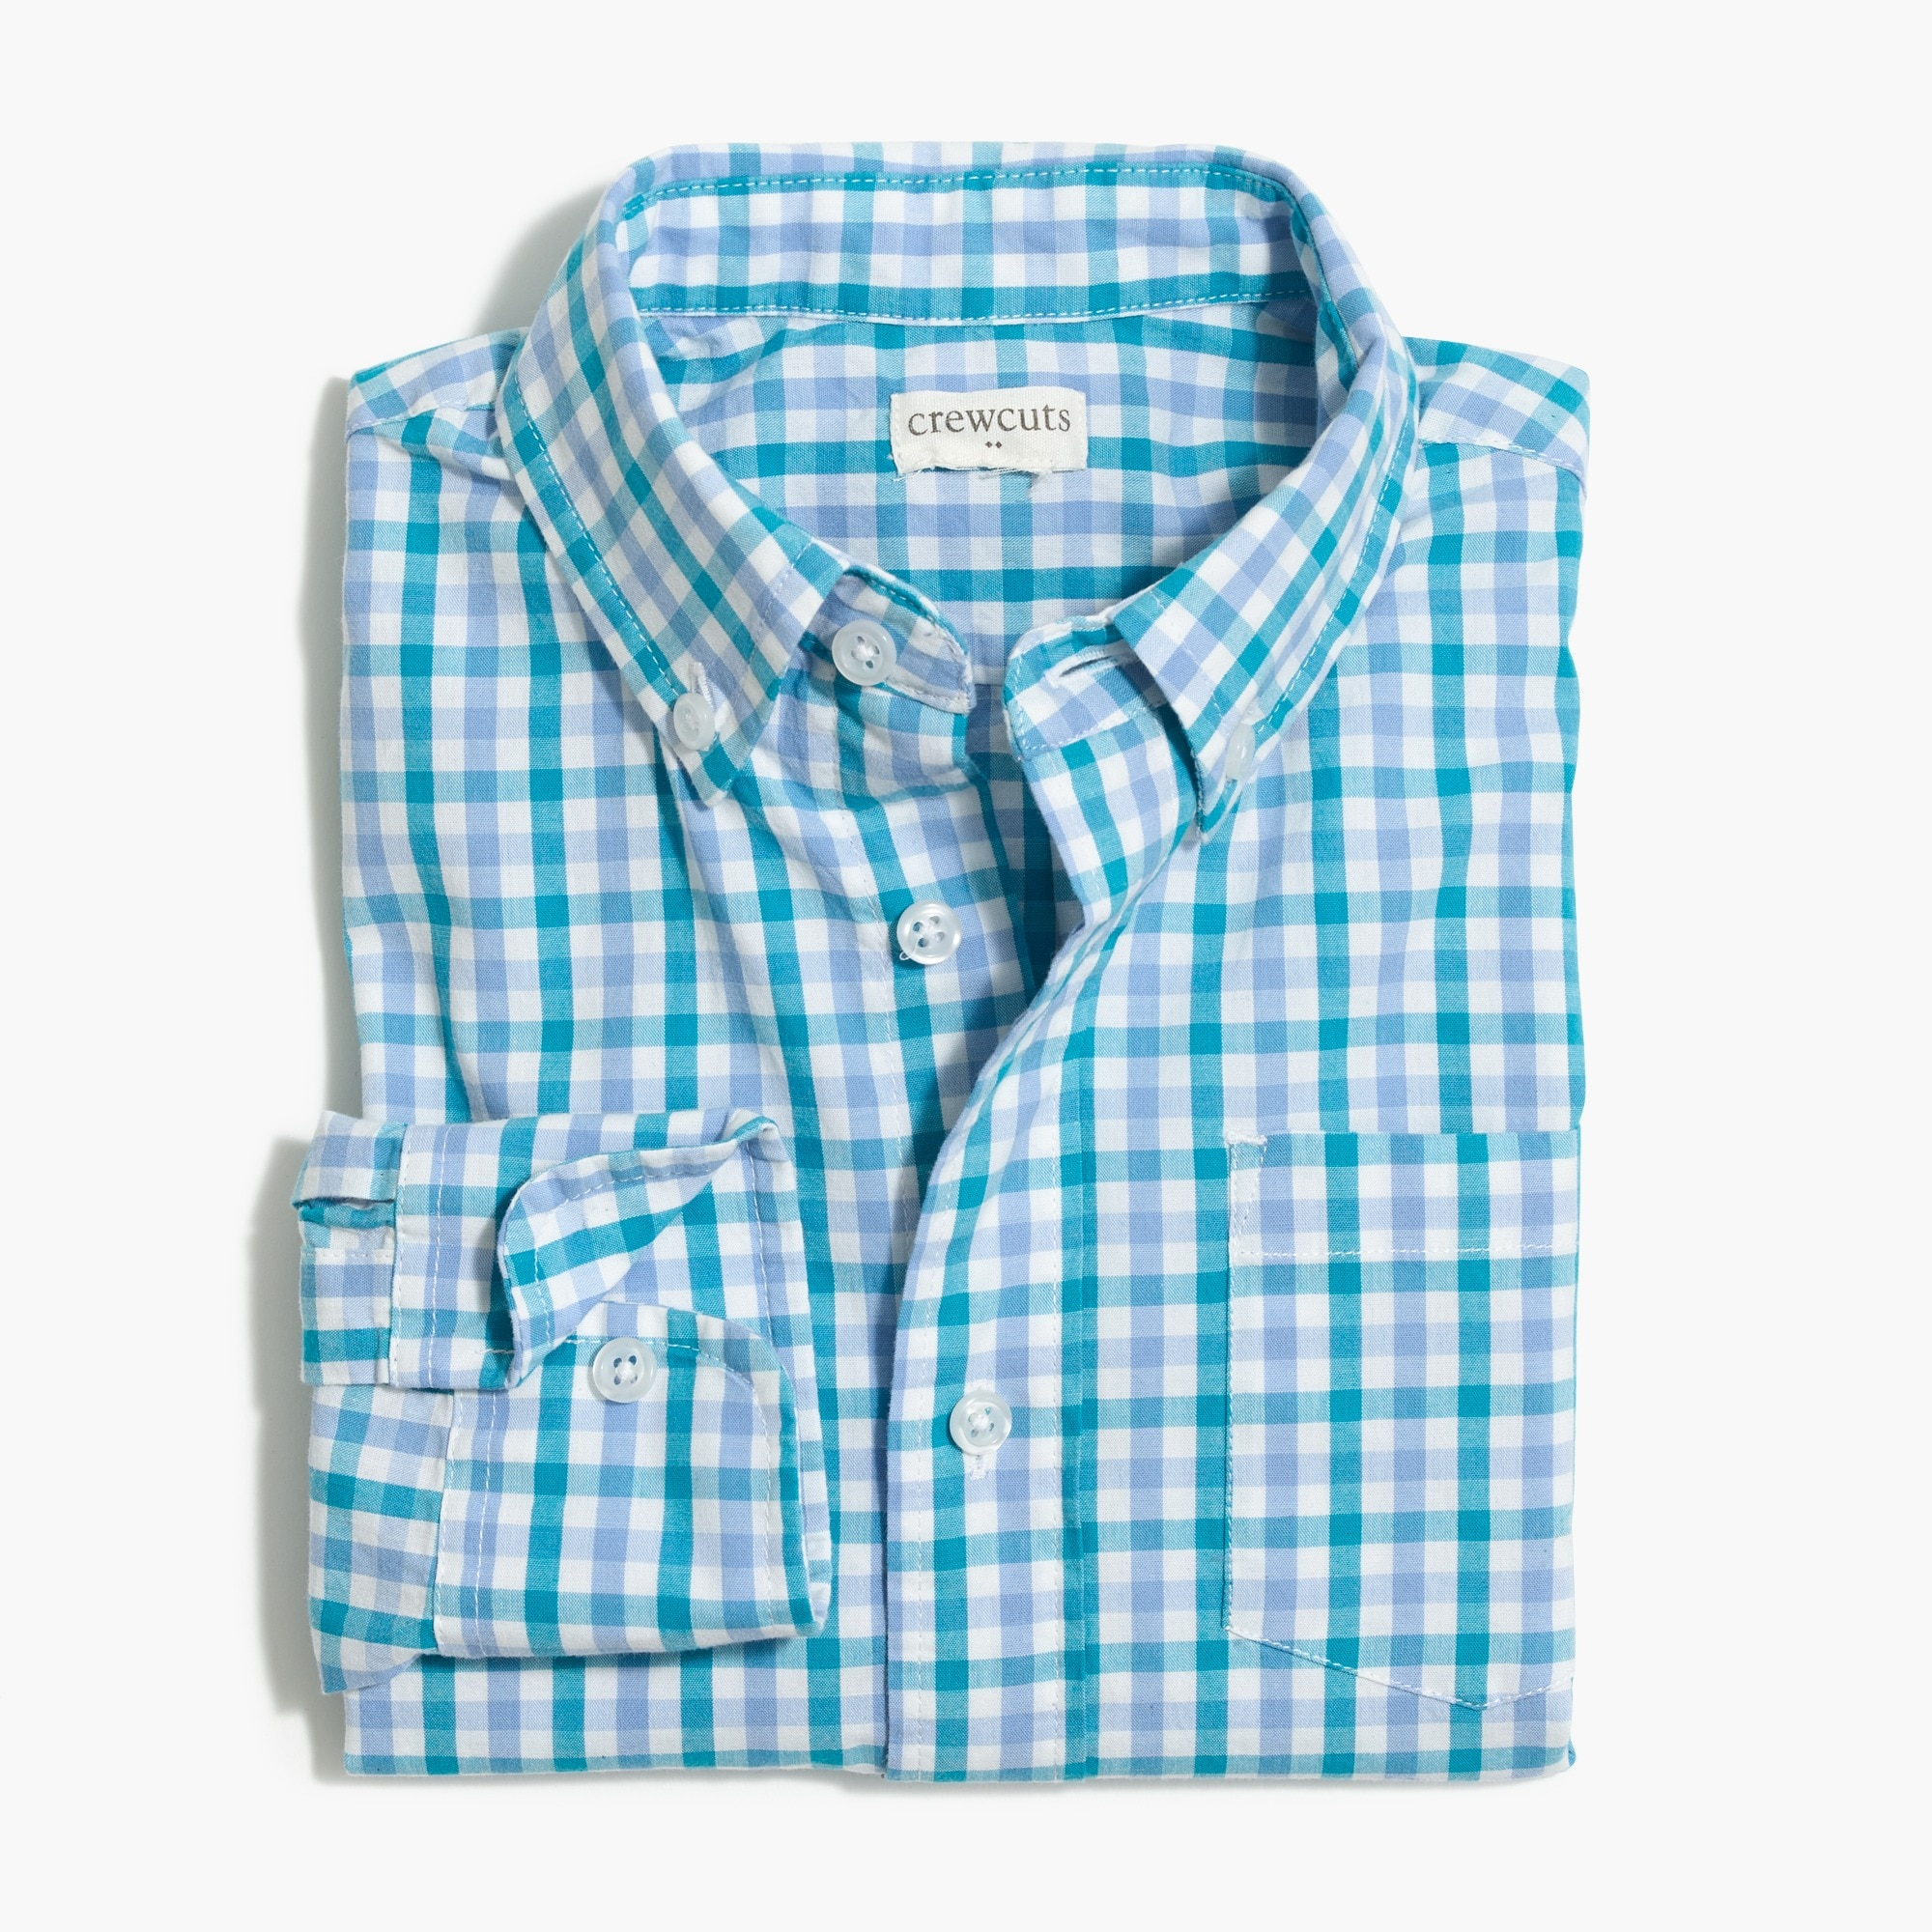 j.crew factory: boys' long-sleeve flex washed shirt in print